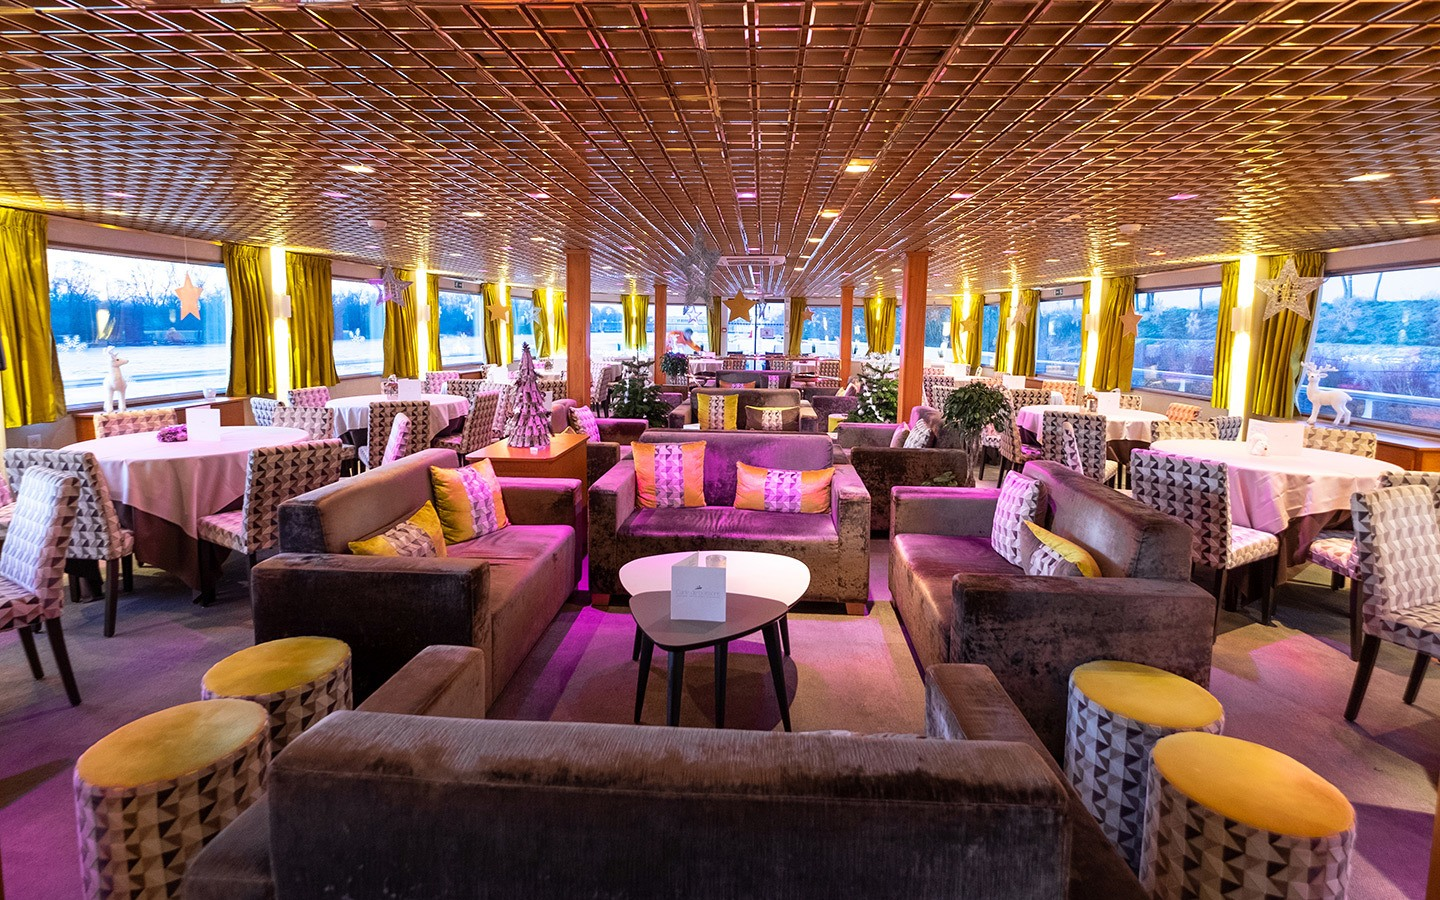 Lounge on the CroisiEurope river cruise ship MS France